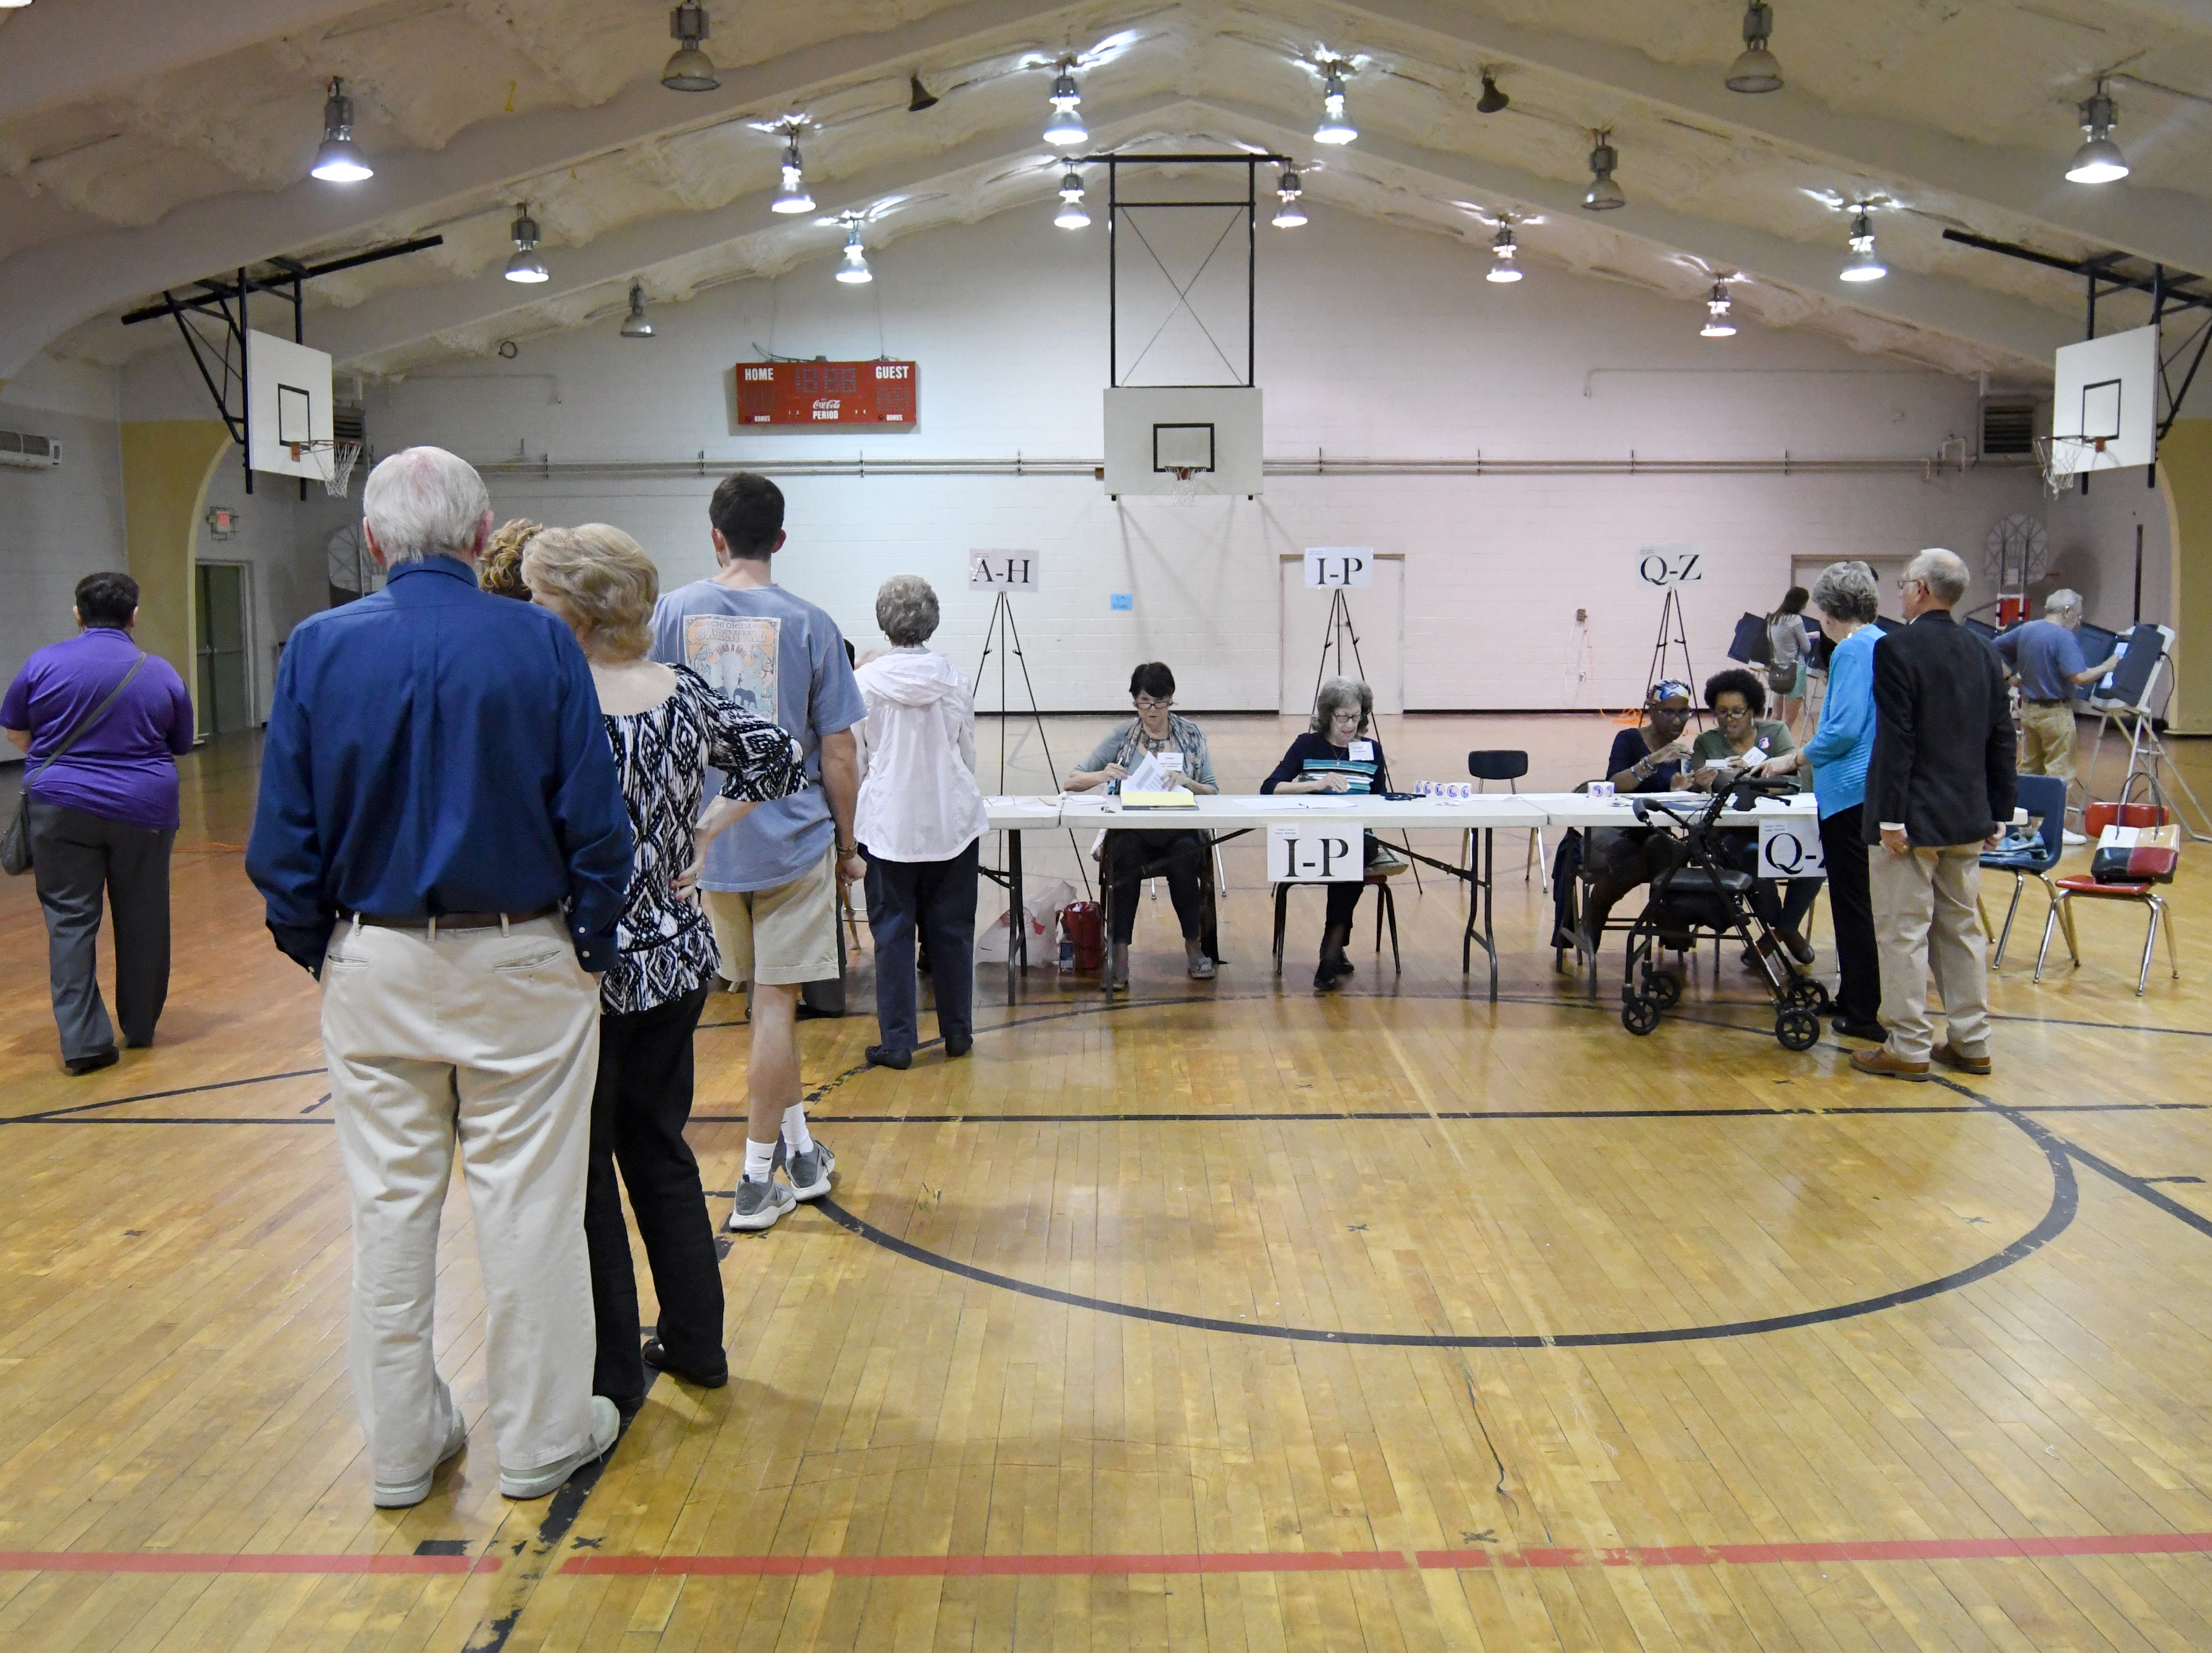 Hattiesburg residents wait to cast their ballot during the midterm elections at the Thames Elementary precinct on Tuesday, November 6, 2018.